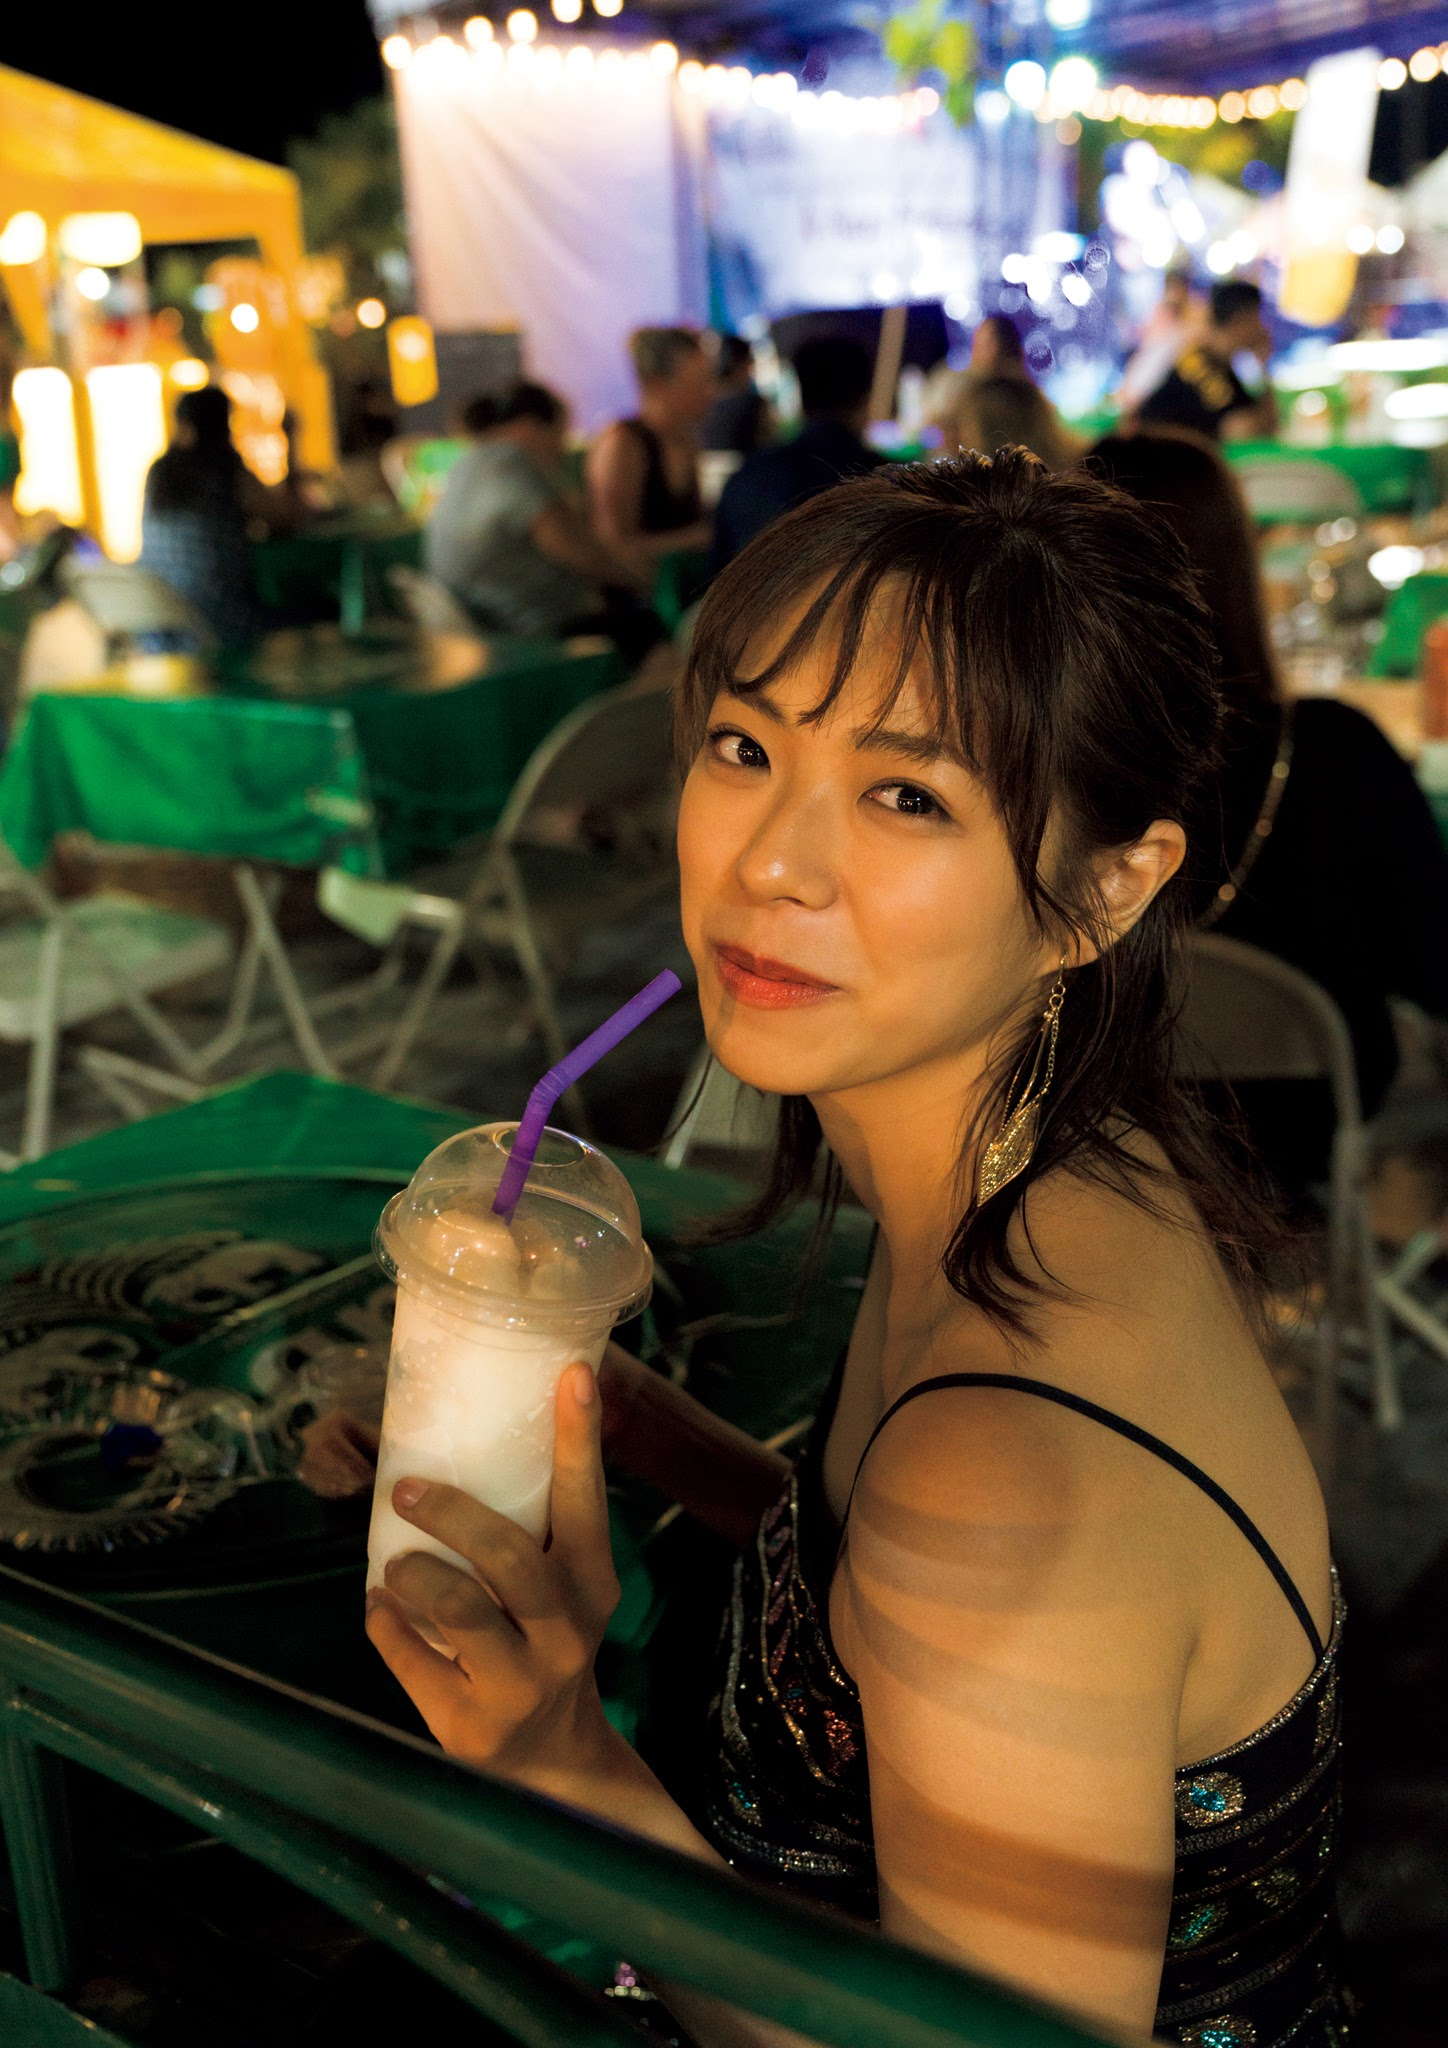 Super body of H cup Minami Wachi 2020 that exposes body and mind in tropical Thailand043